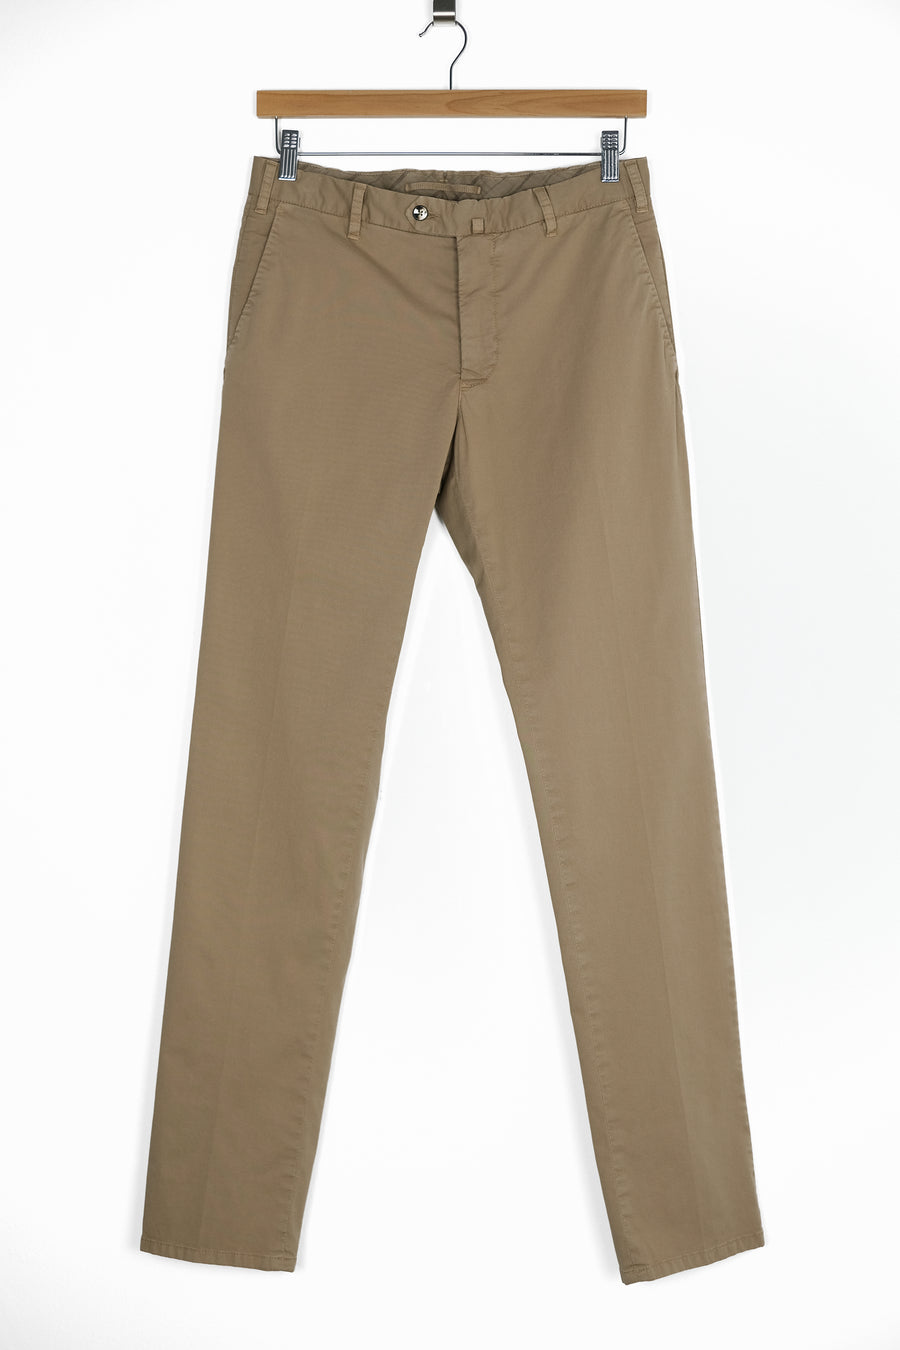 MCS Cotton Stretch Twill Trouser